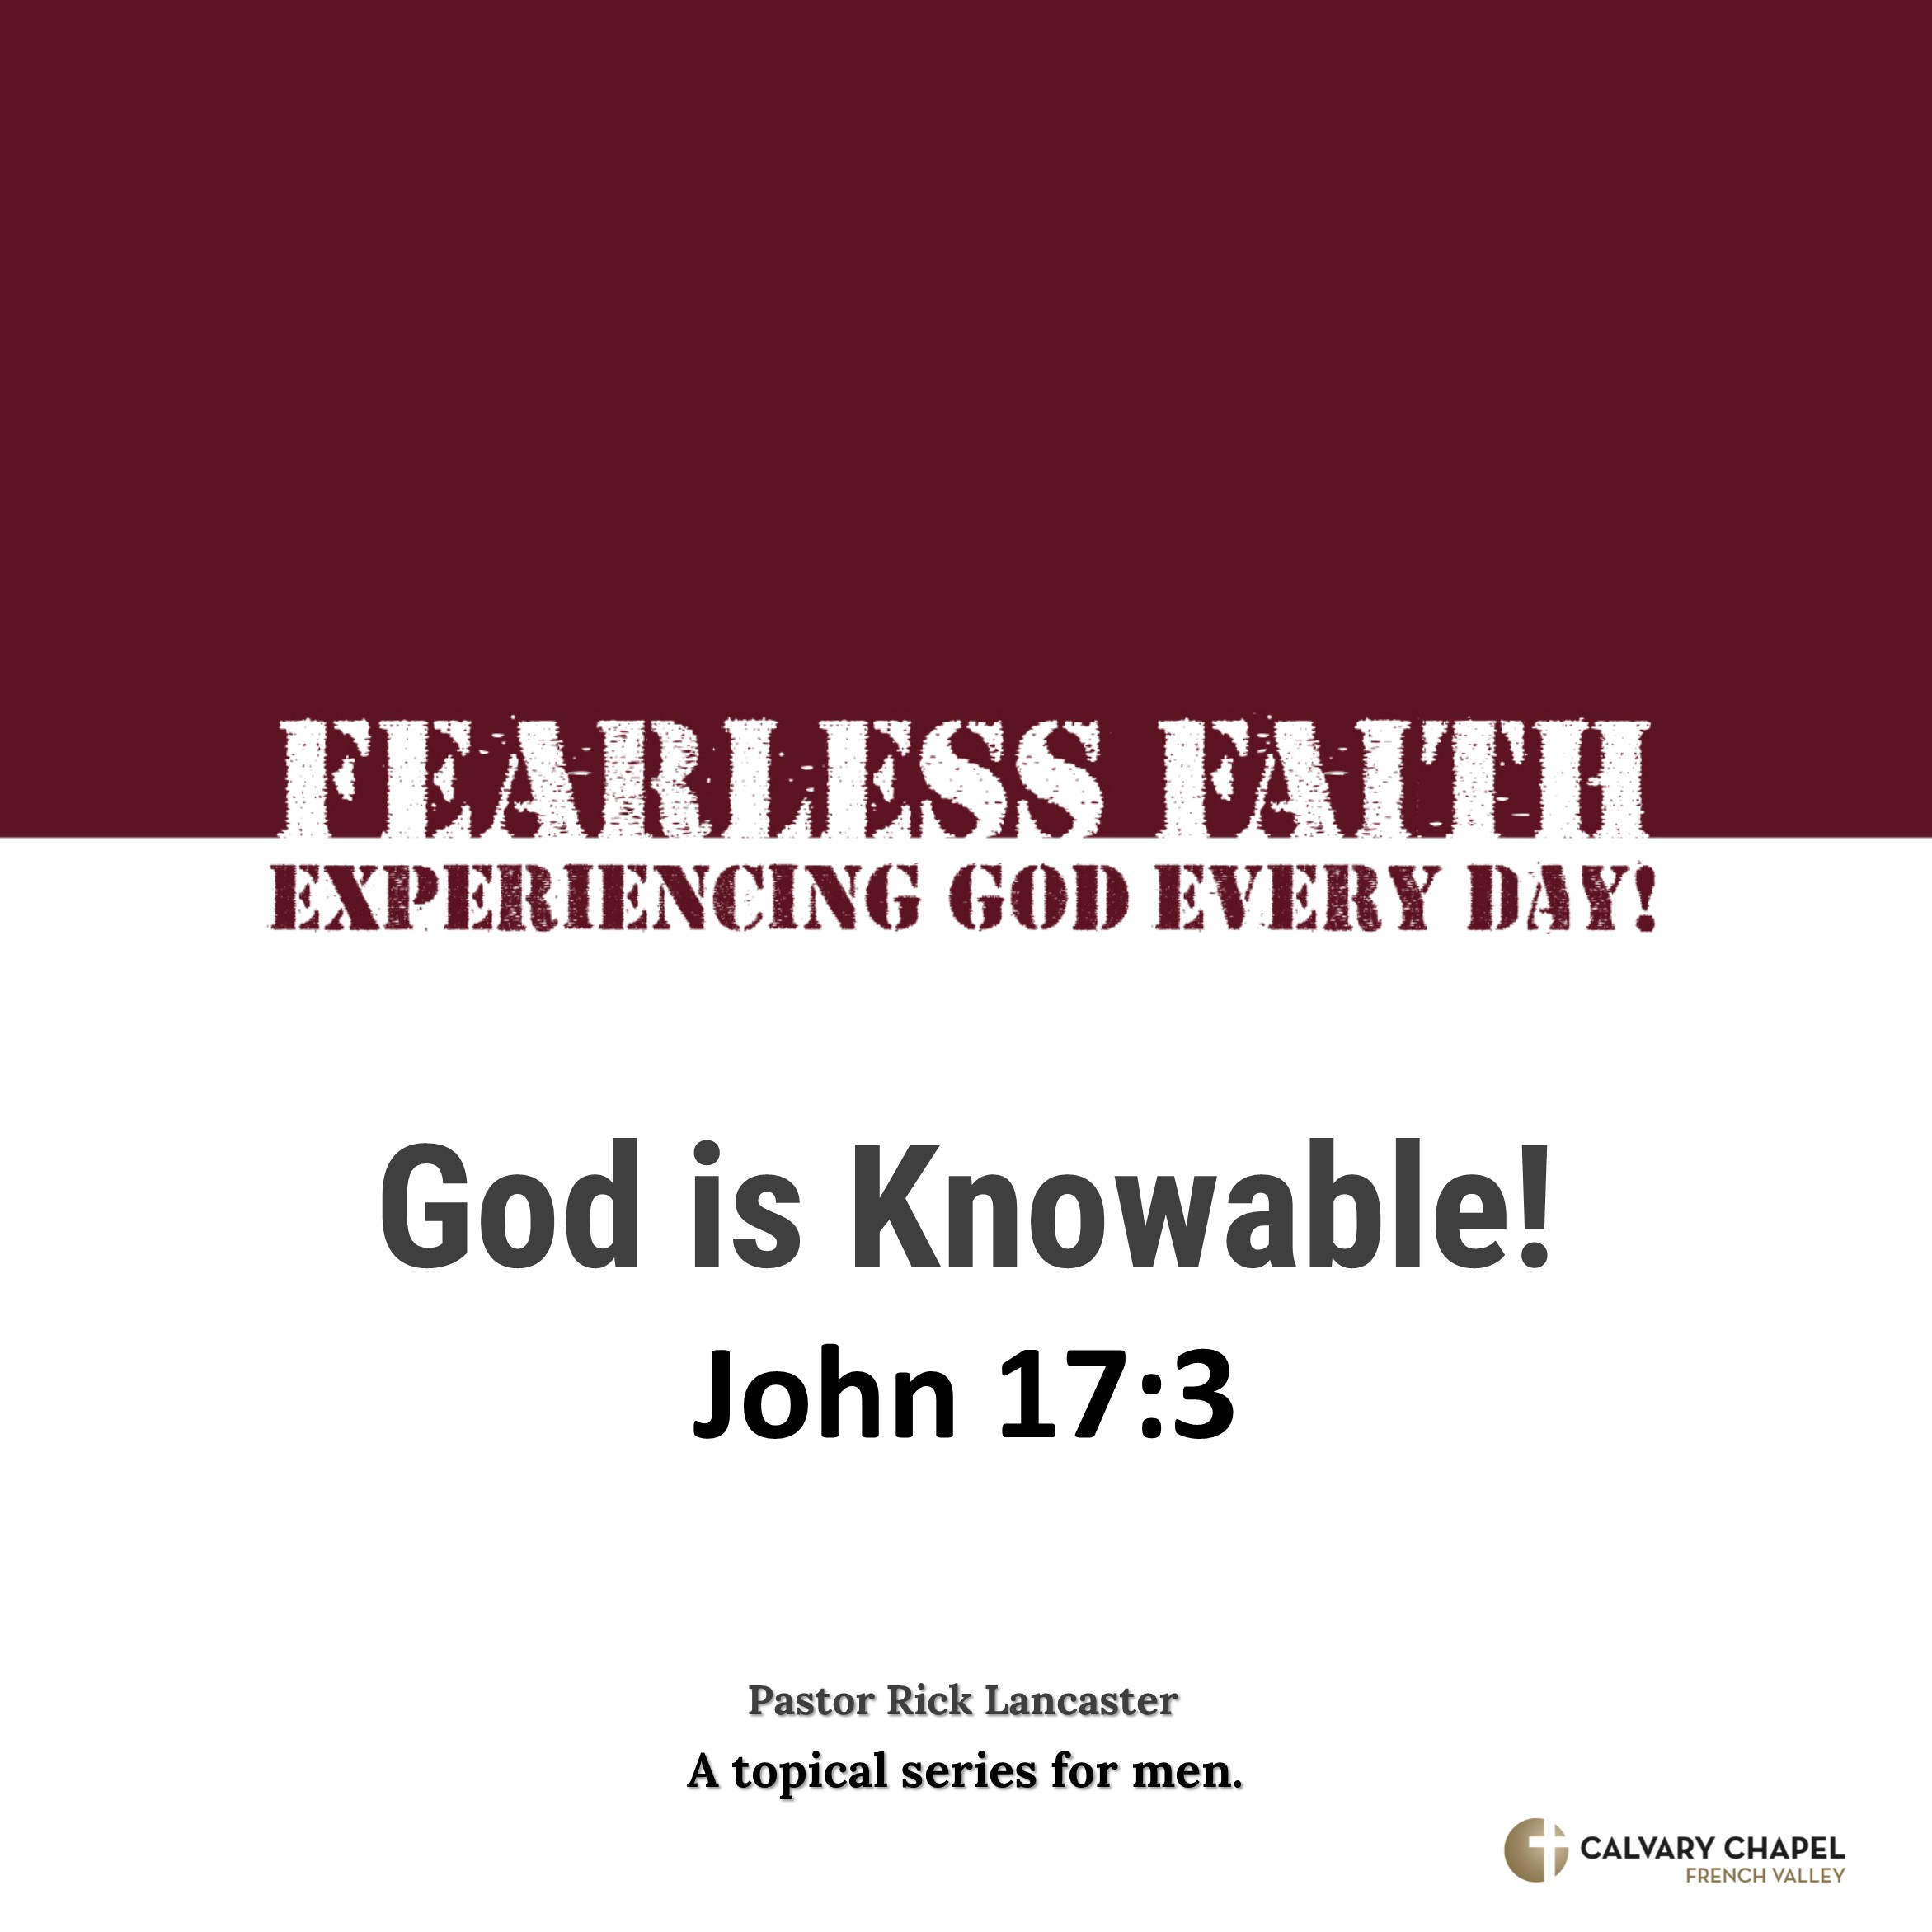 God is Knowable! – John 17:3 Image